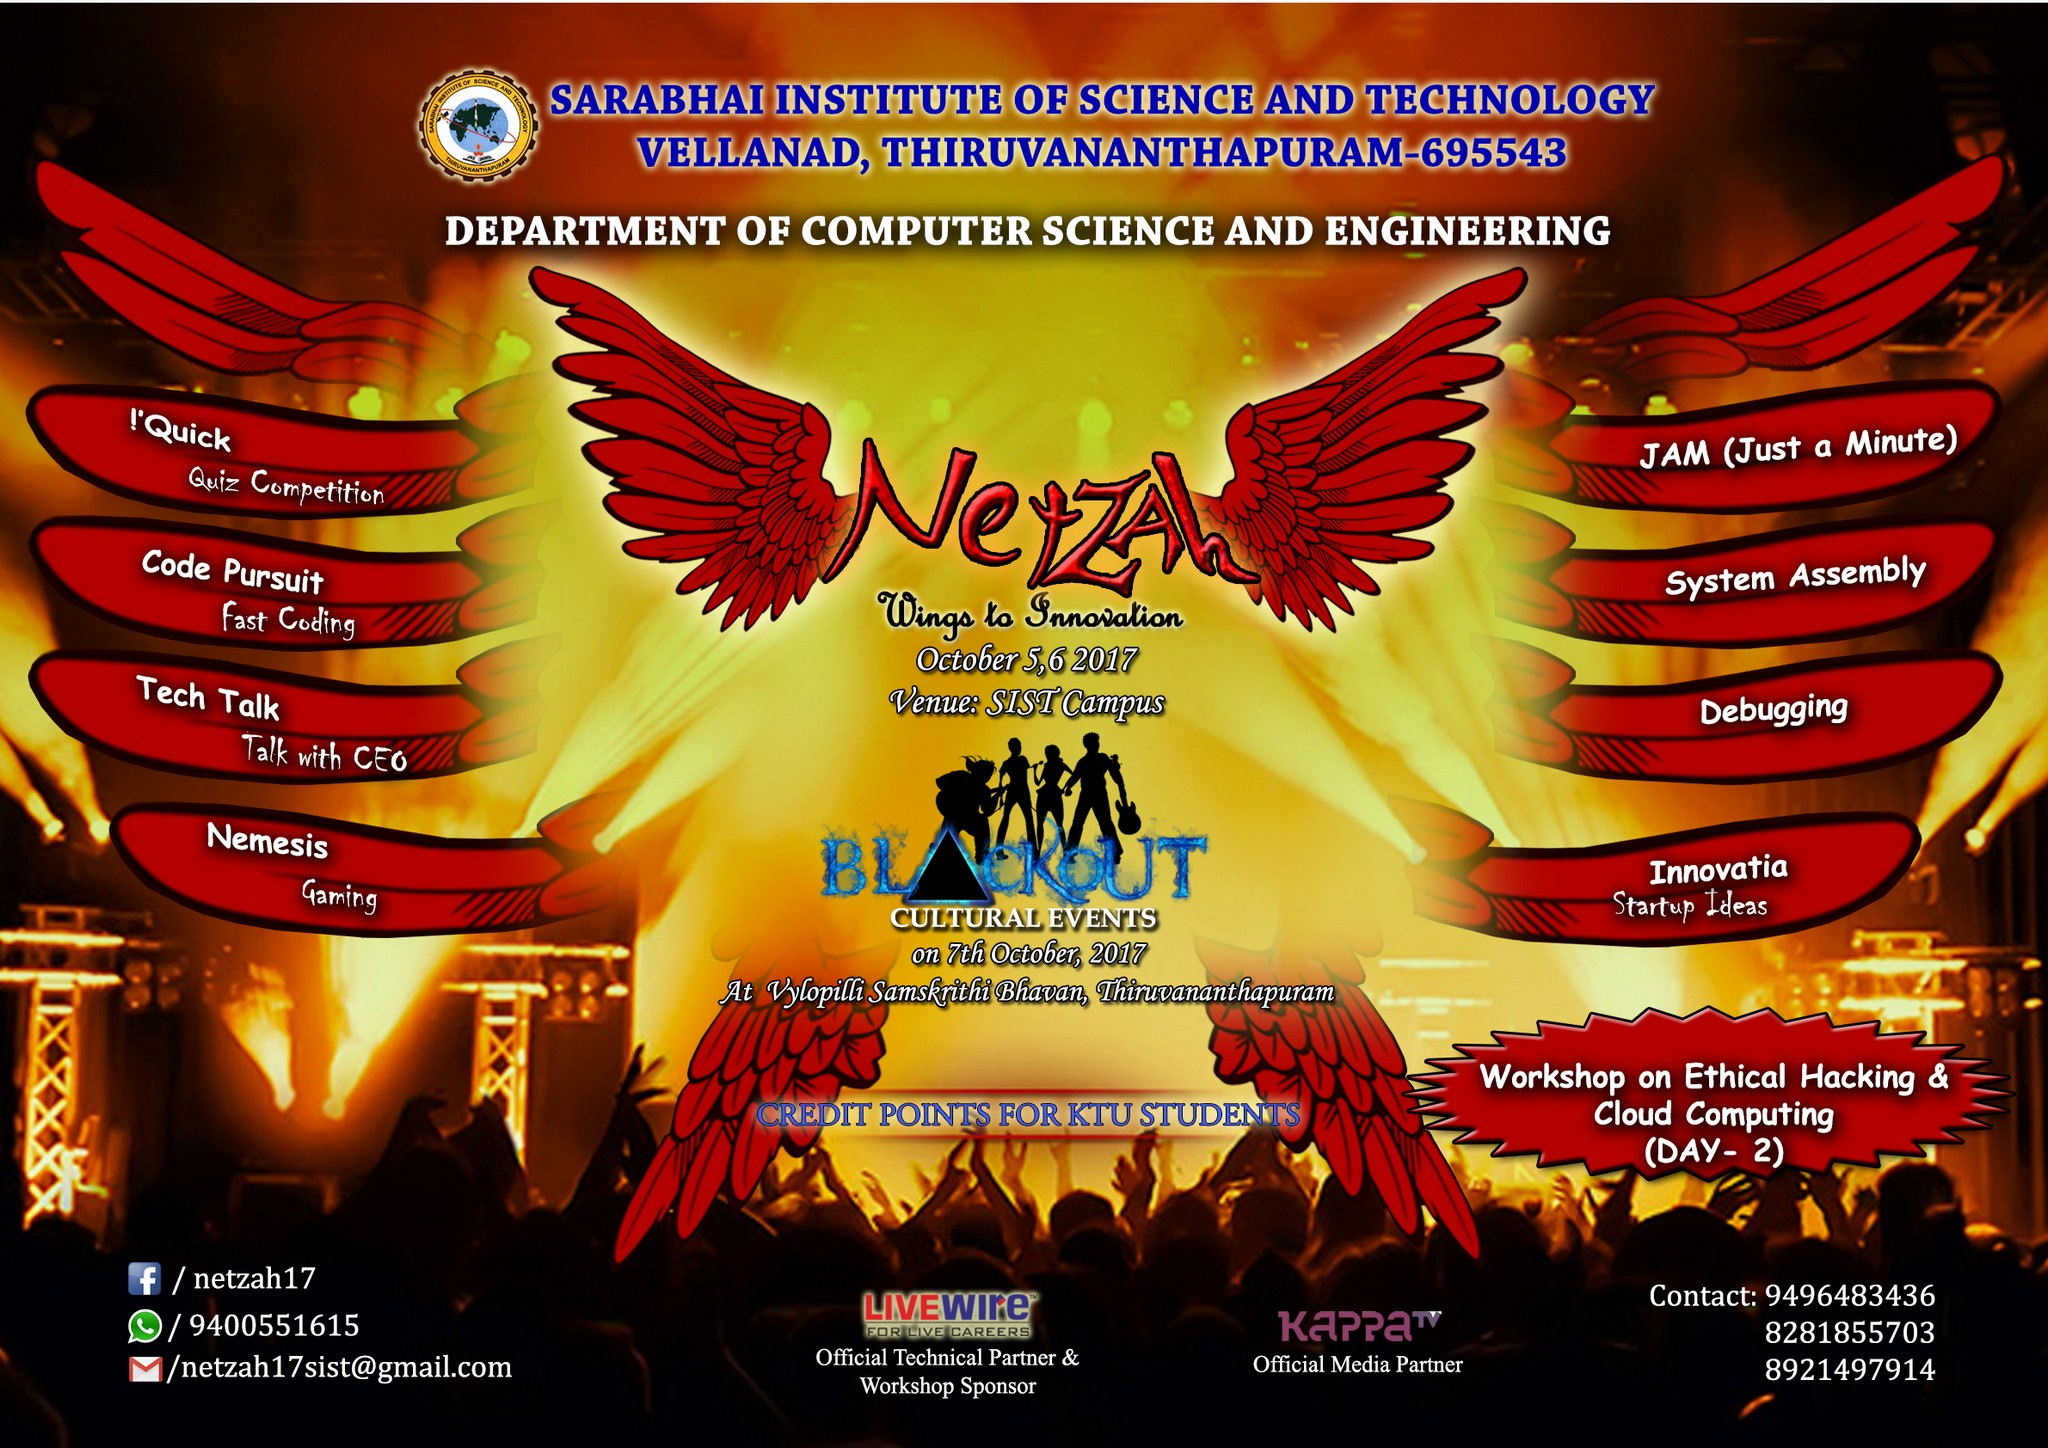 Netzah - Wings to Innovation - Cultural Events - SIST